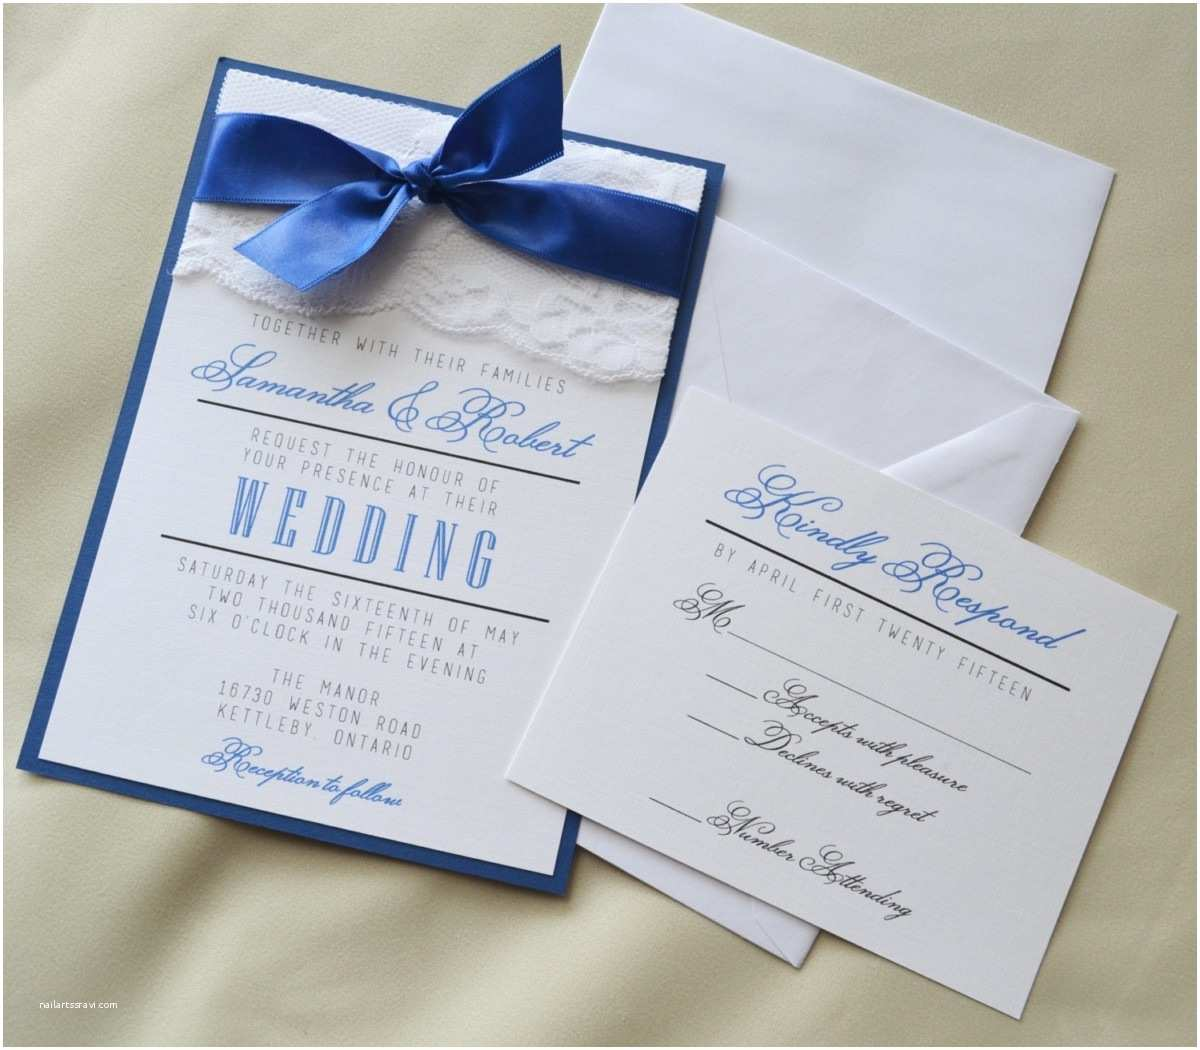 Print Your Own Wedding Invitations Print Your Own Wedding Invitations